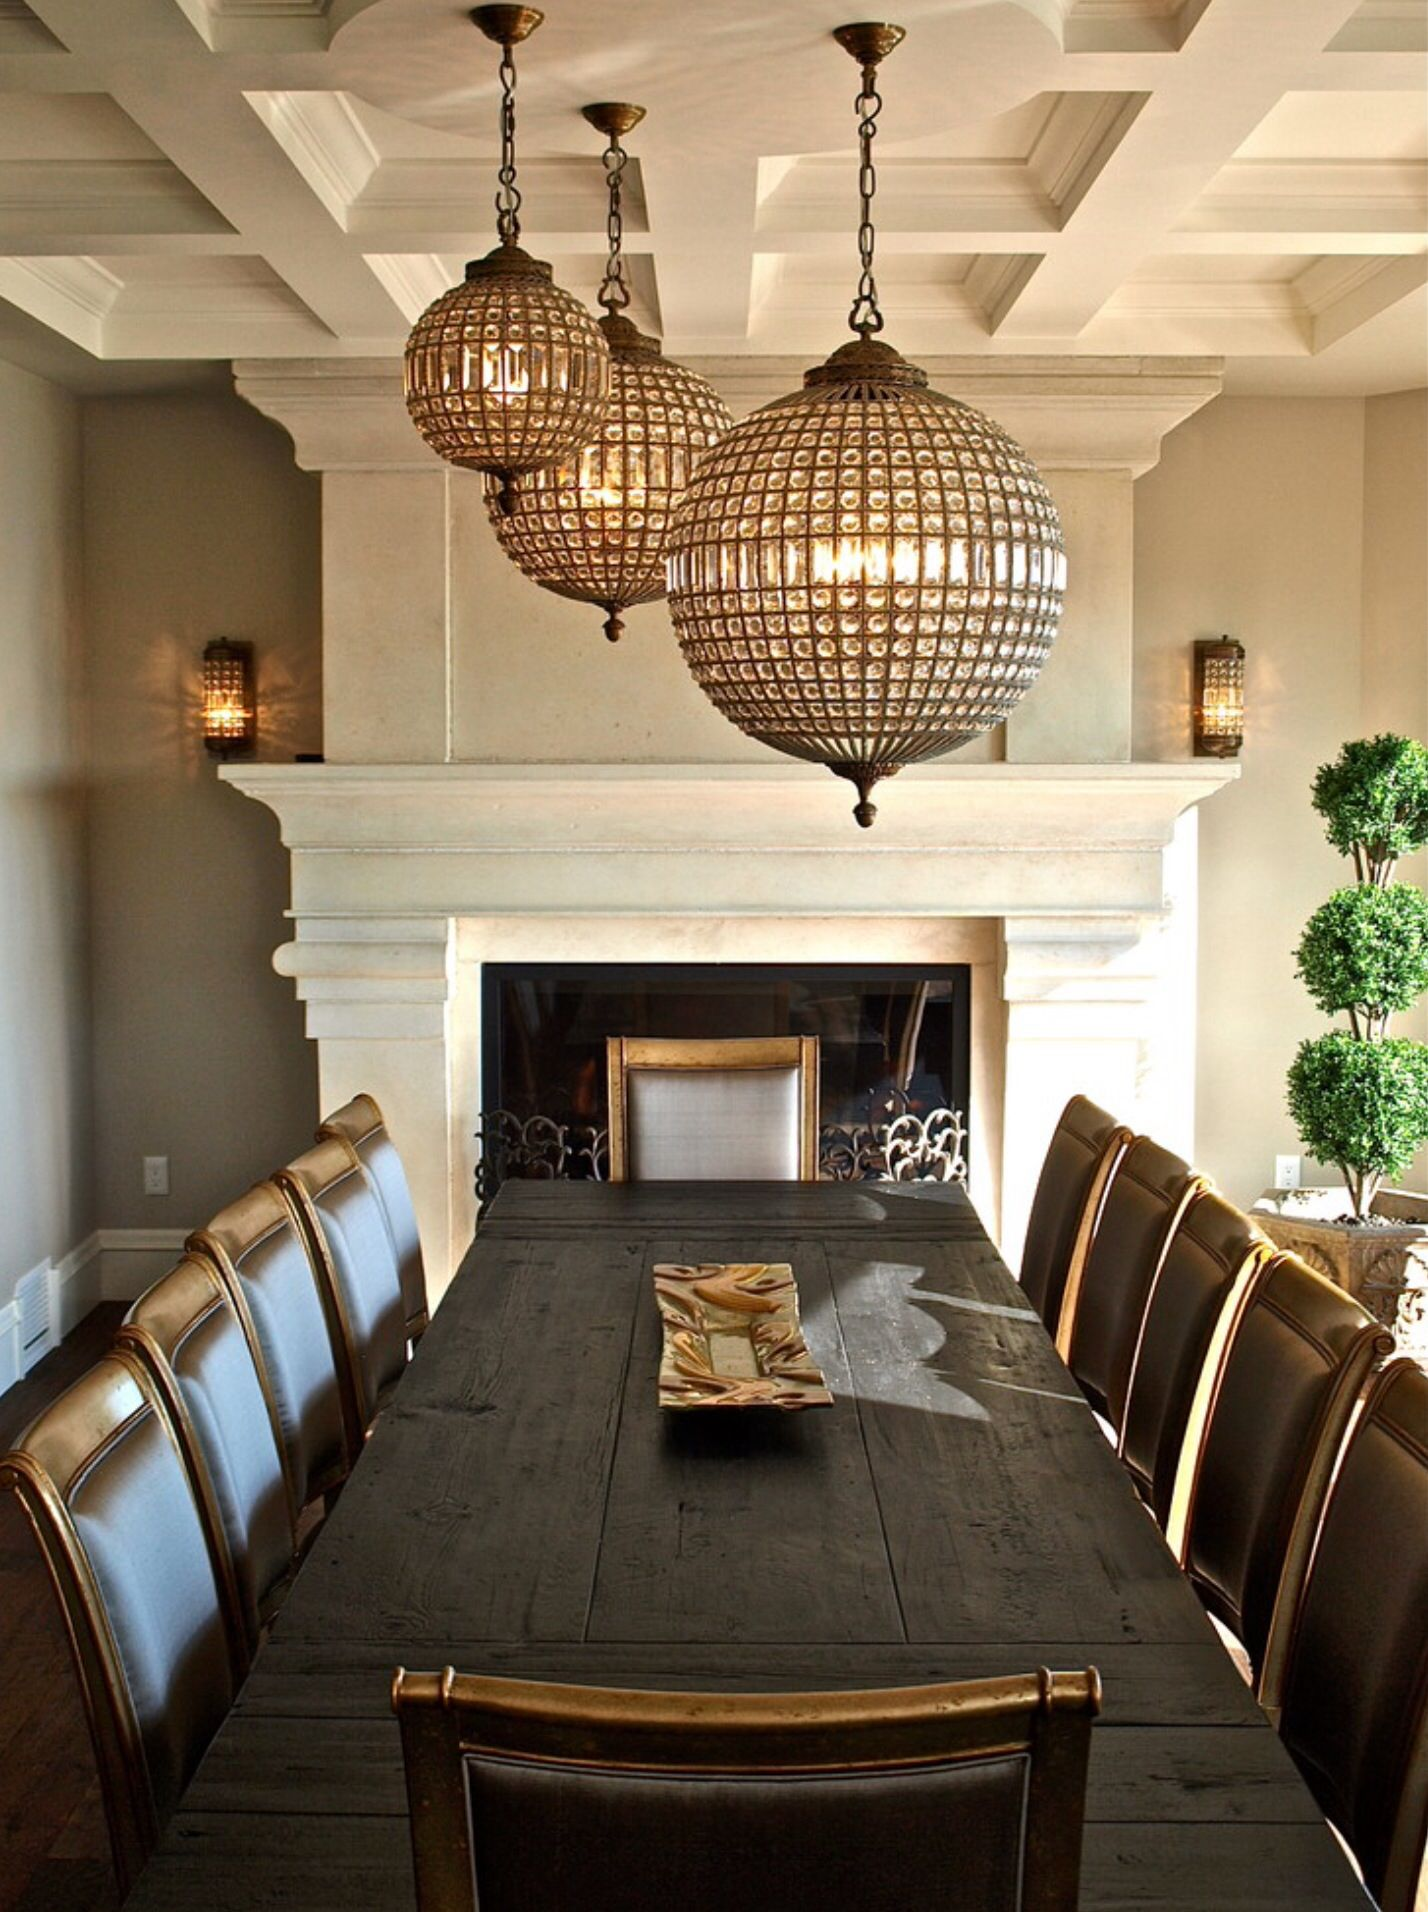 Marvelous Restoration Hardware Lighting 1395 For One Dining Room